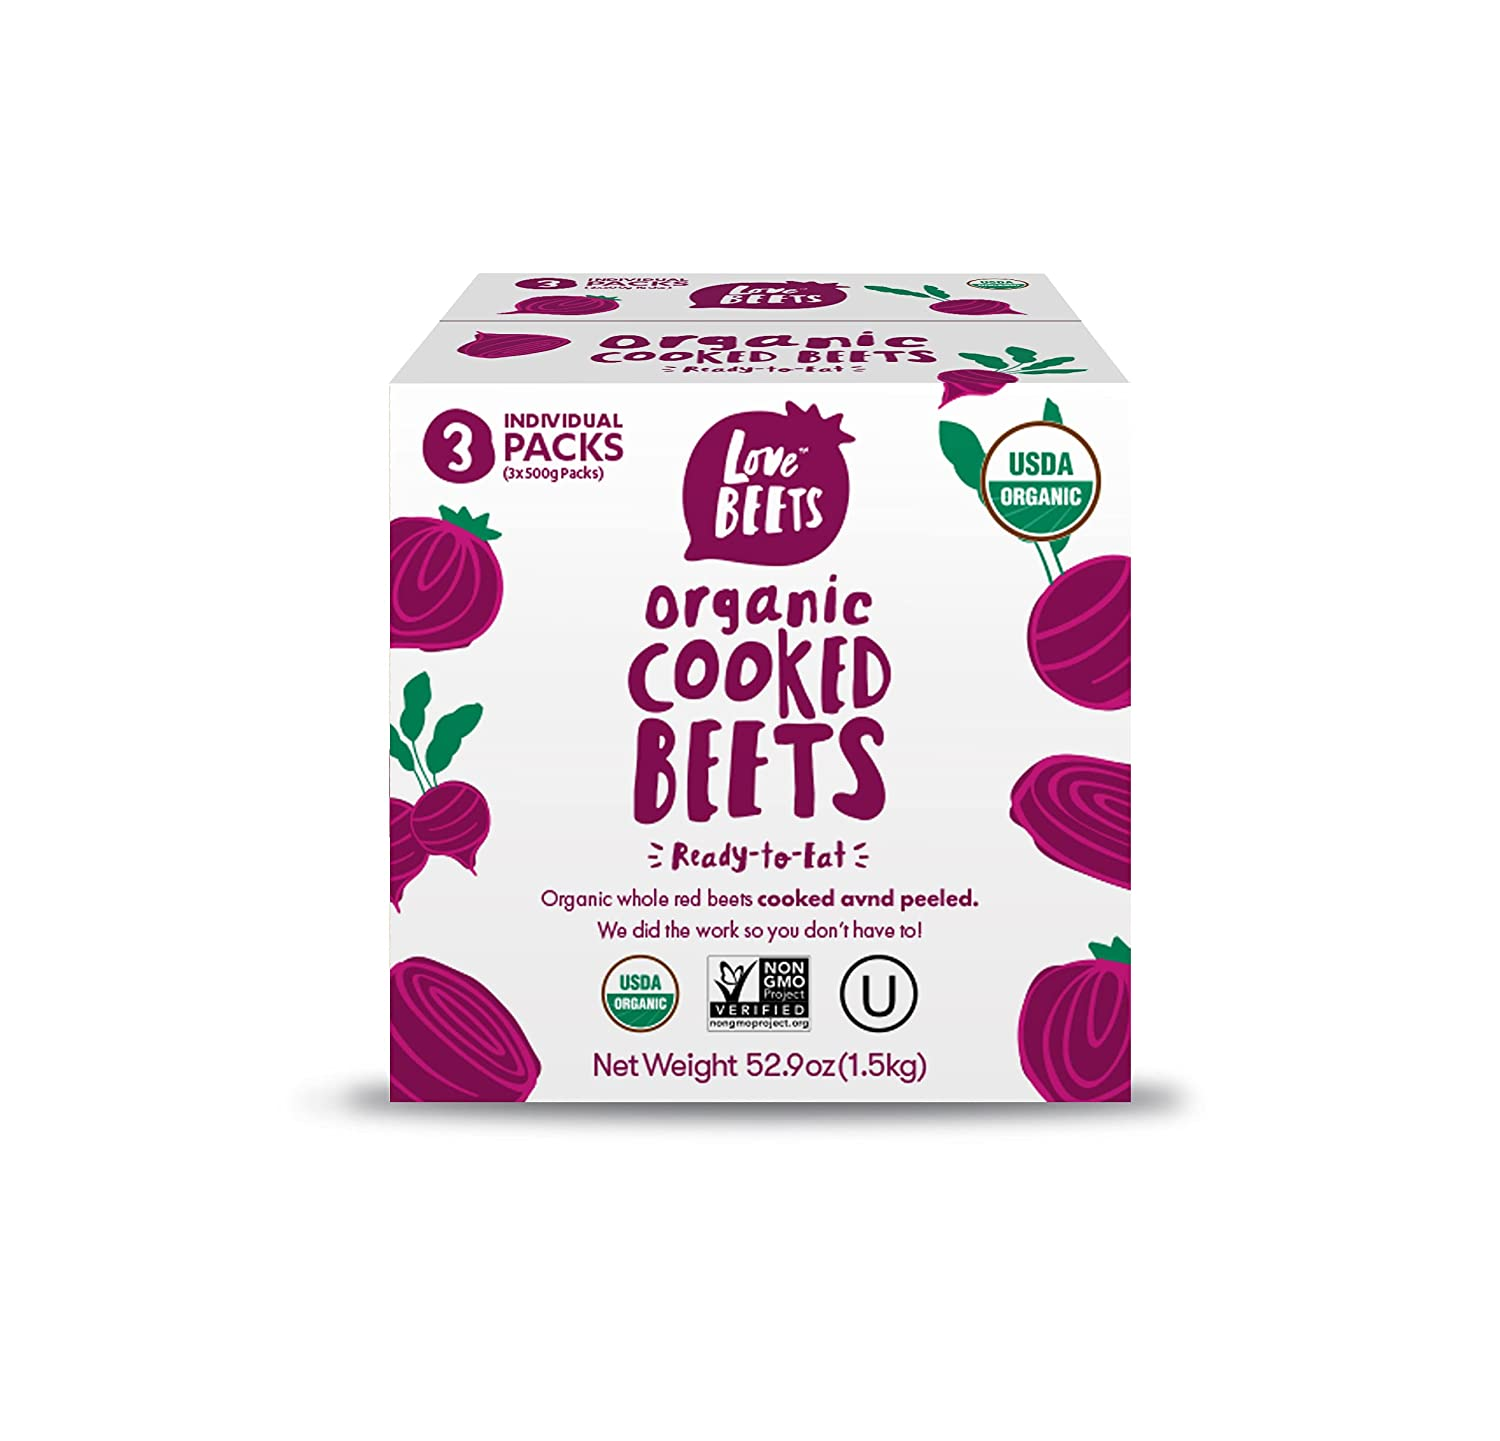 Love Beets Organic Cooked Beets | USA Grown Beets, Rich in Antioxidants, Nitric Oxide Boosting, No Added Sugar, No Preservatives or Coloring, USDA Organic, Non-GMO, Kosher, 500g (3 pack)